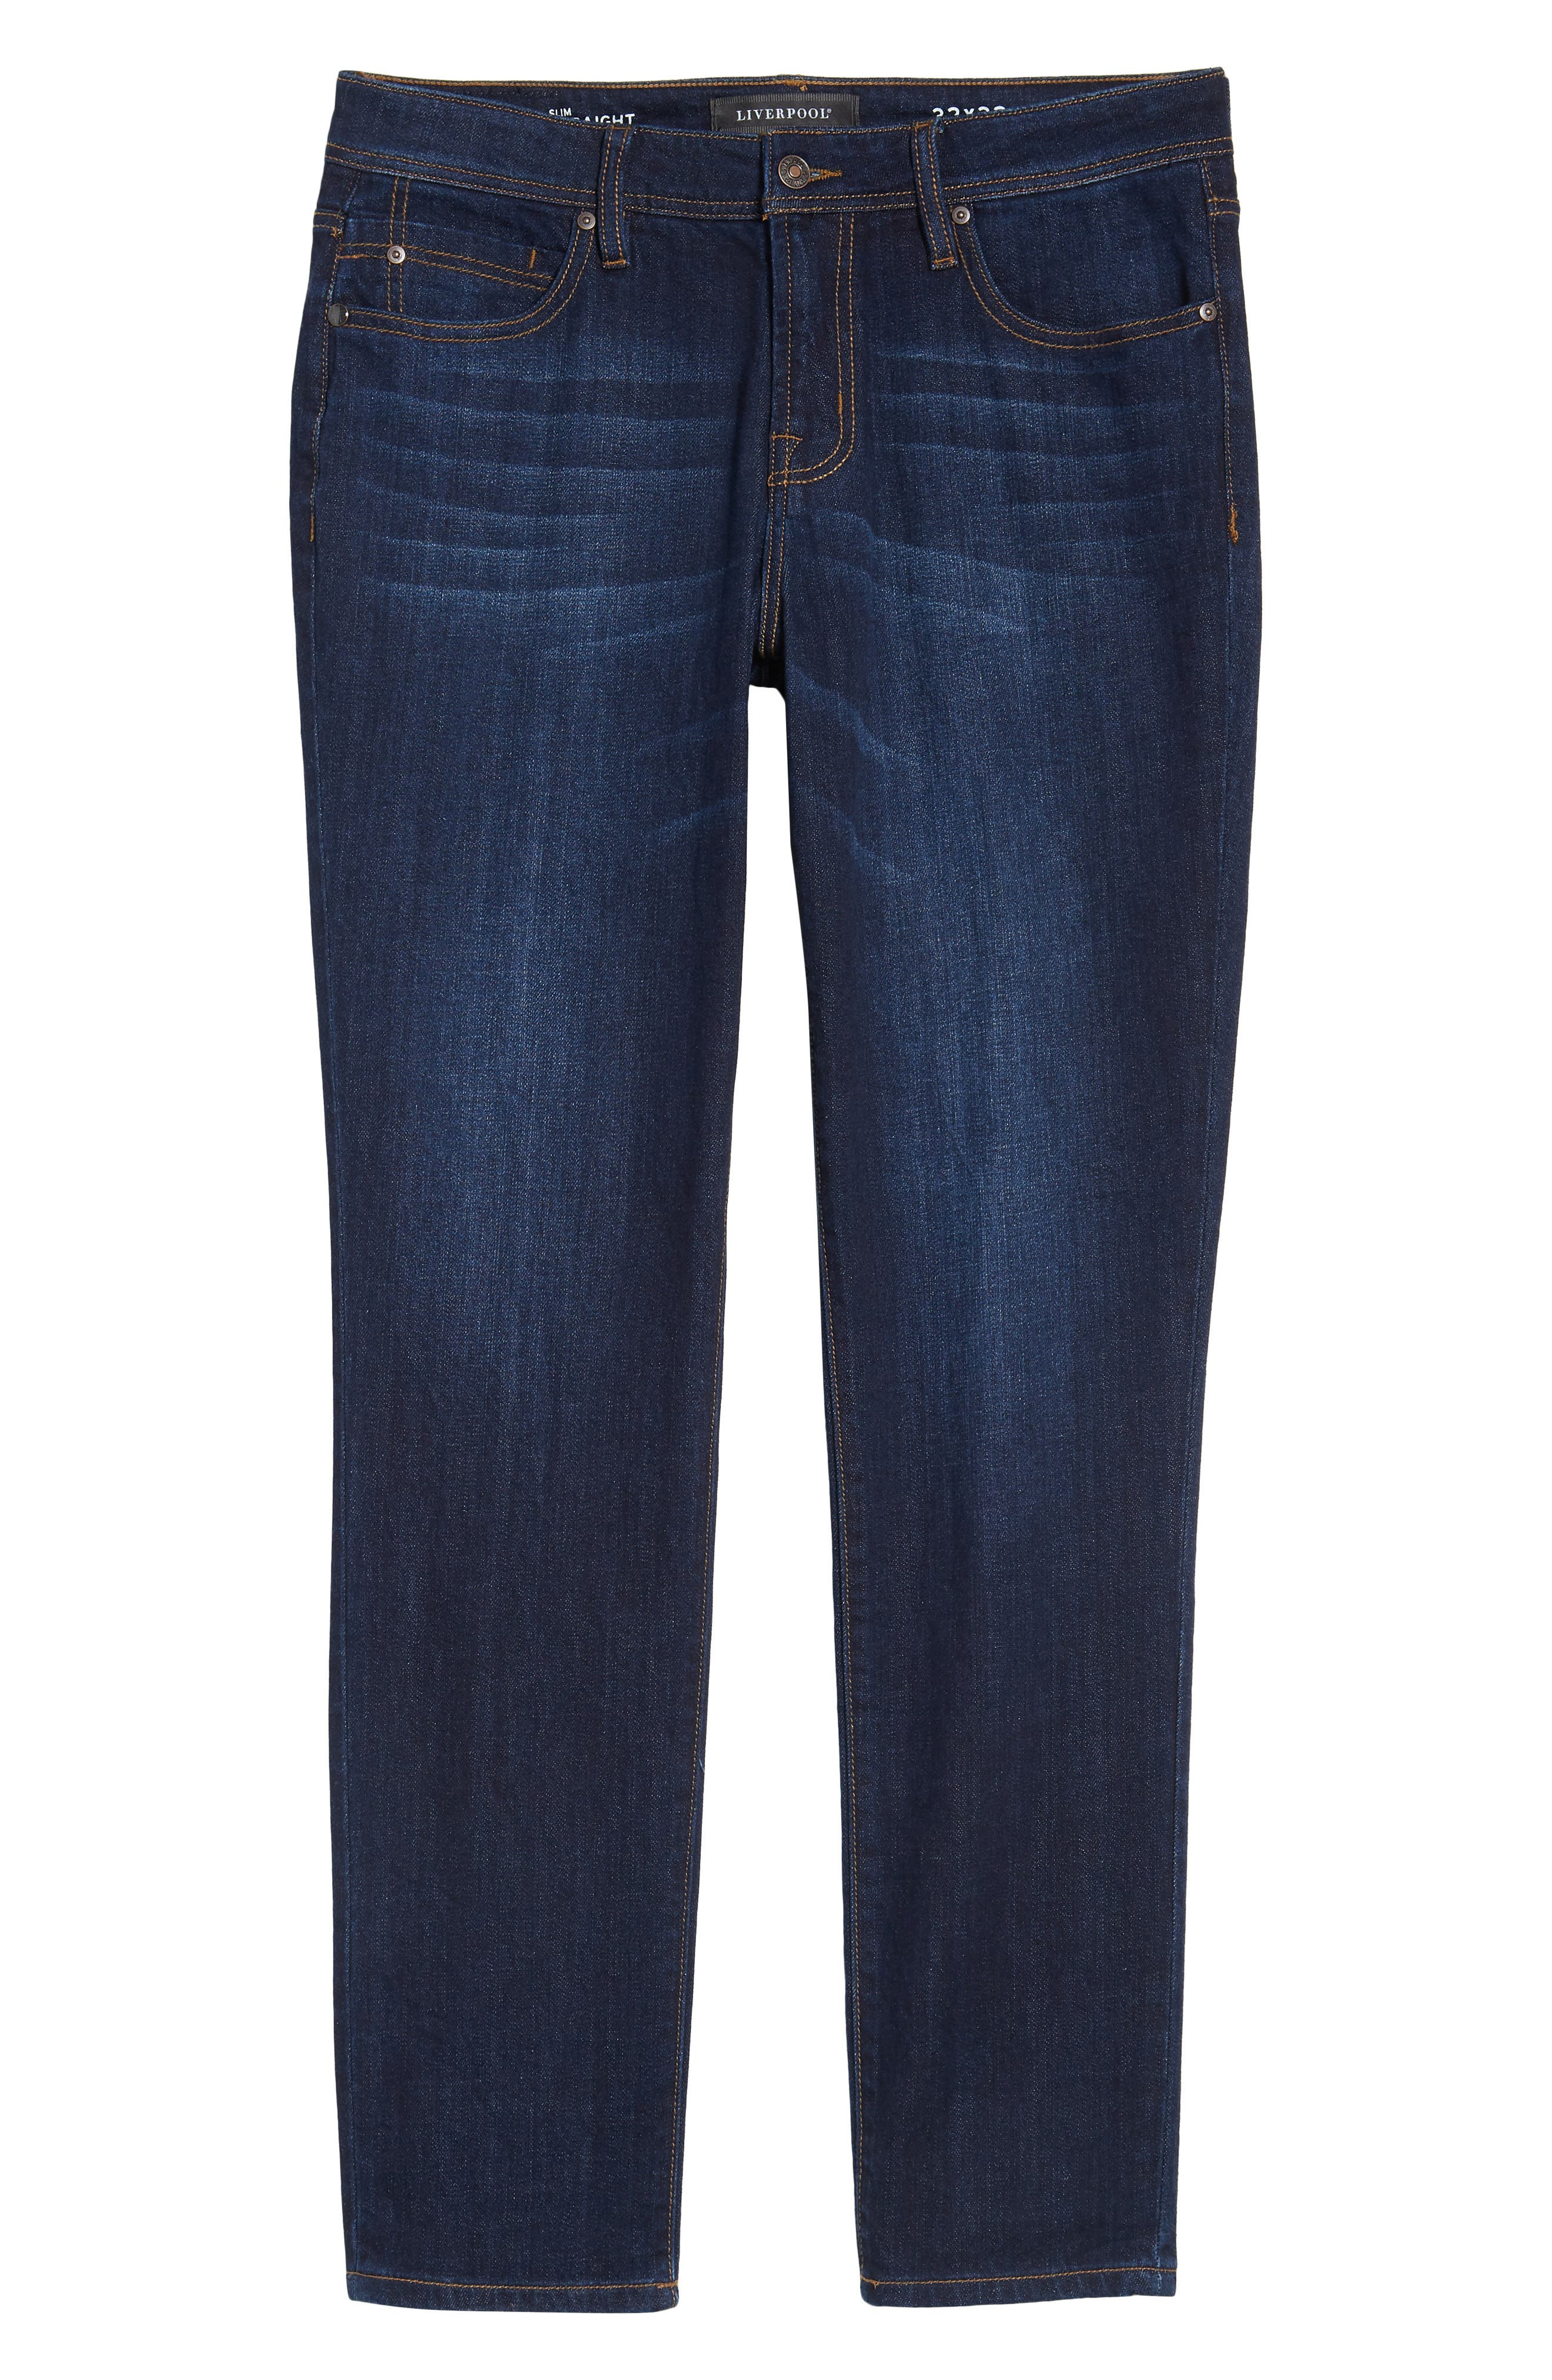 Jeans Co. Kingston Slim Straight Leg Jeans,                             Alternate thumbnail 6, color,                             SAN ARDO VINTAGE DARK